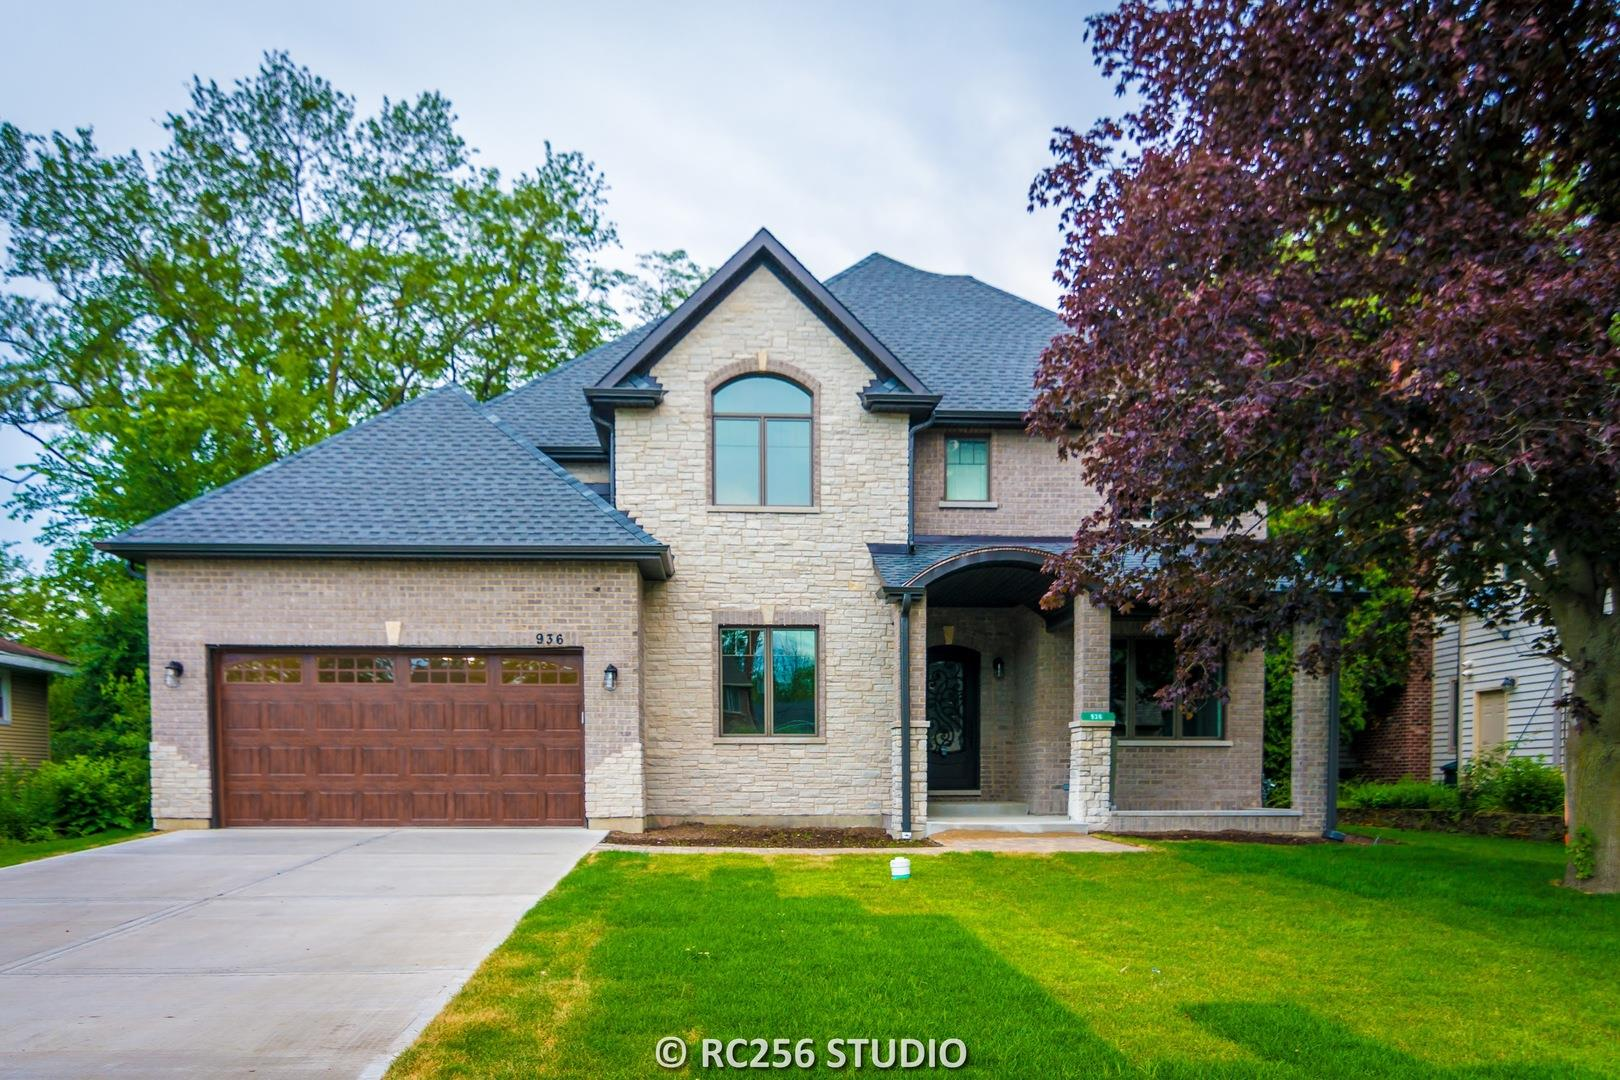 936 S Quincy Street, Hinsdale, IL 60521 - #: 10685444